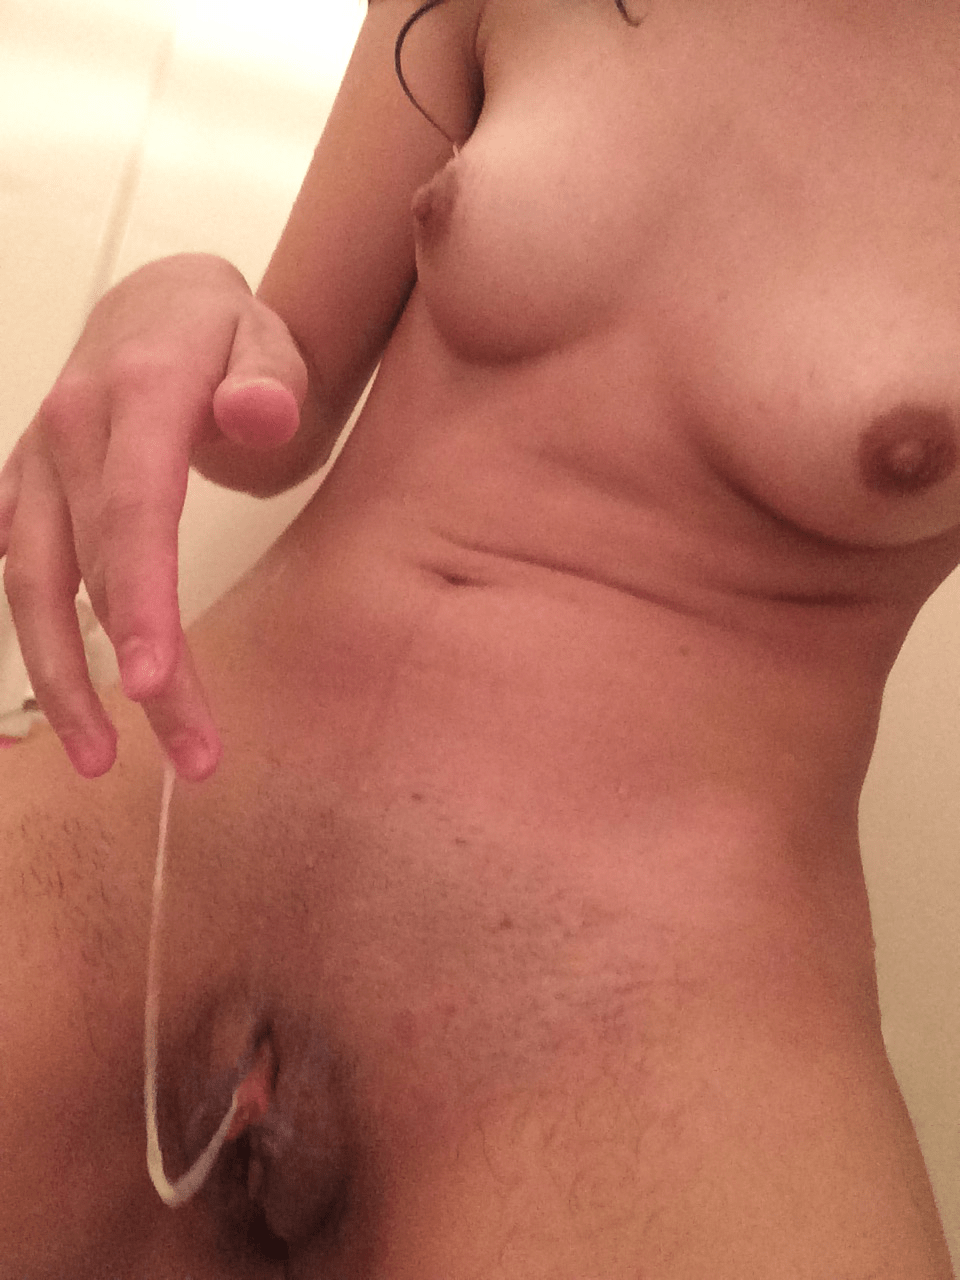 tumblr dripping pussy